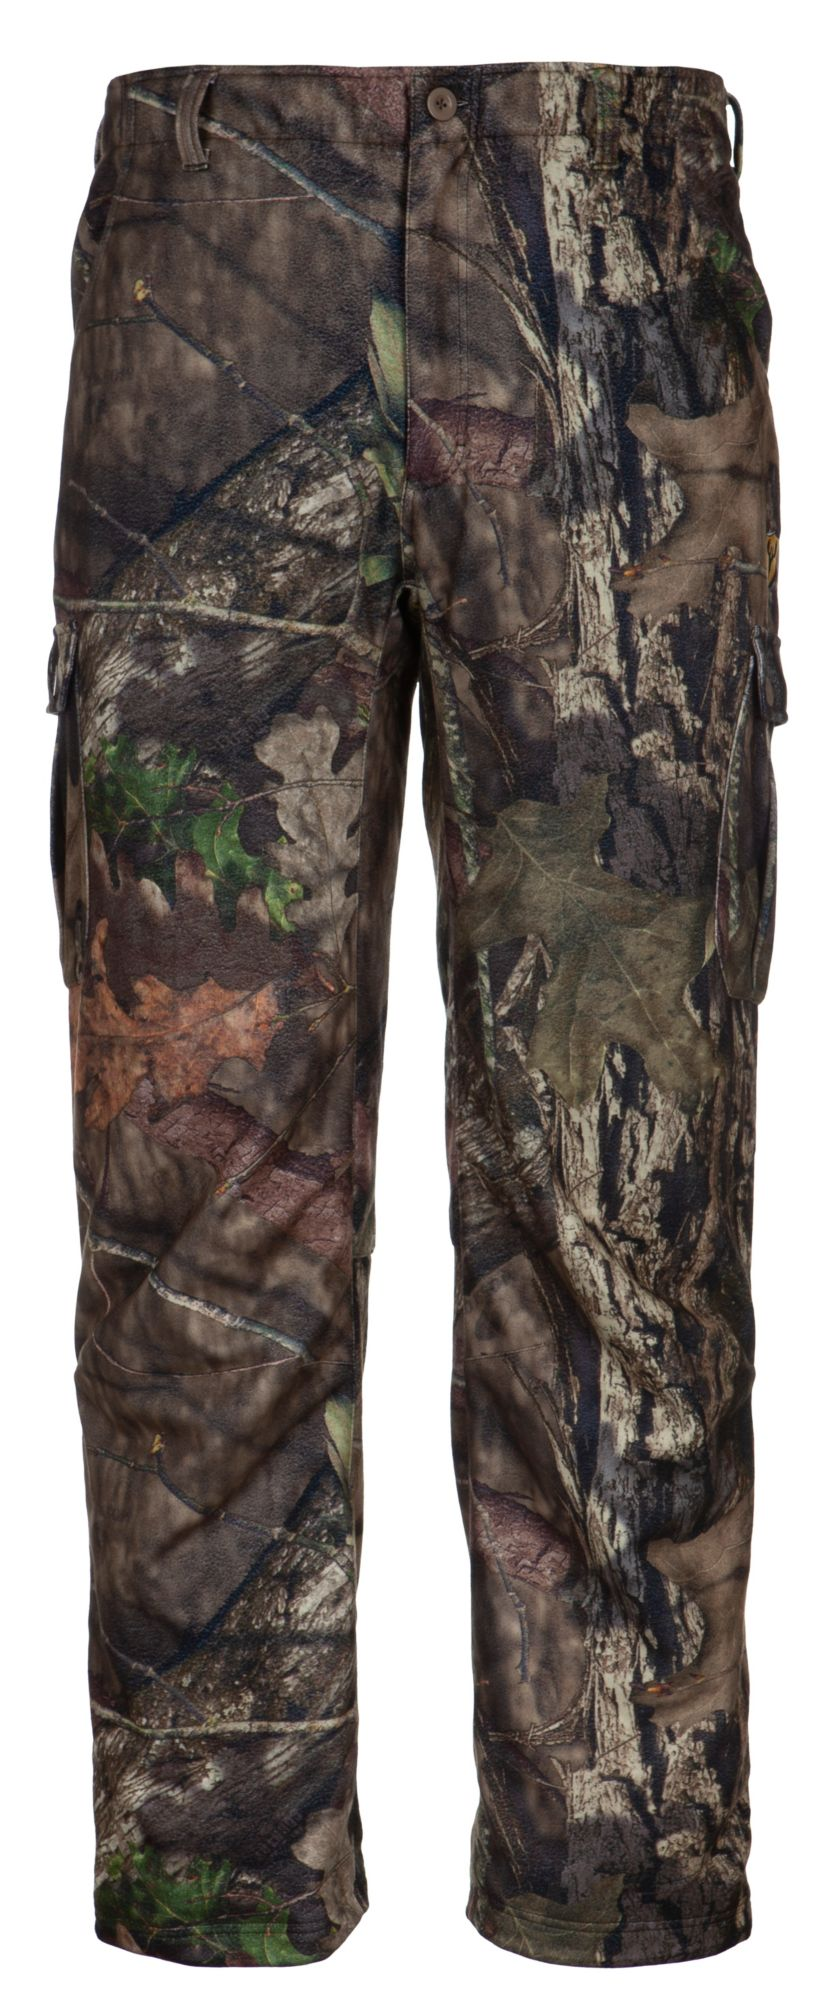 Blocker Outdoors Men's Shield Series Wooltex Pants, Size: Medium, Mossy Oak Country thumbnail